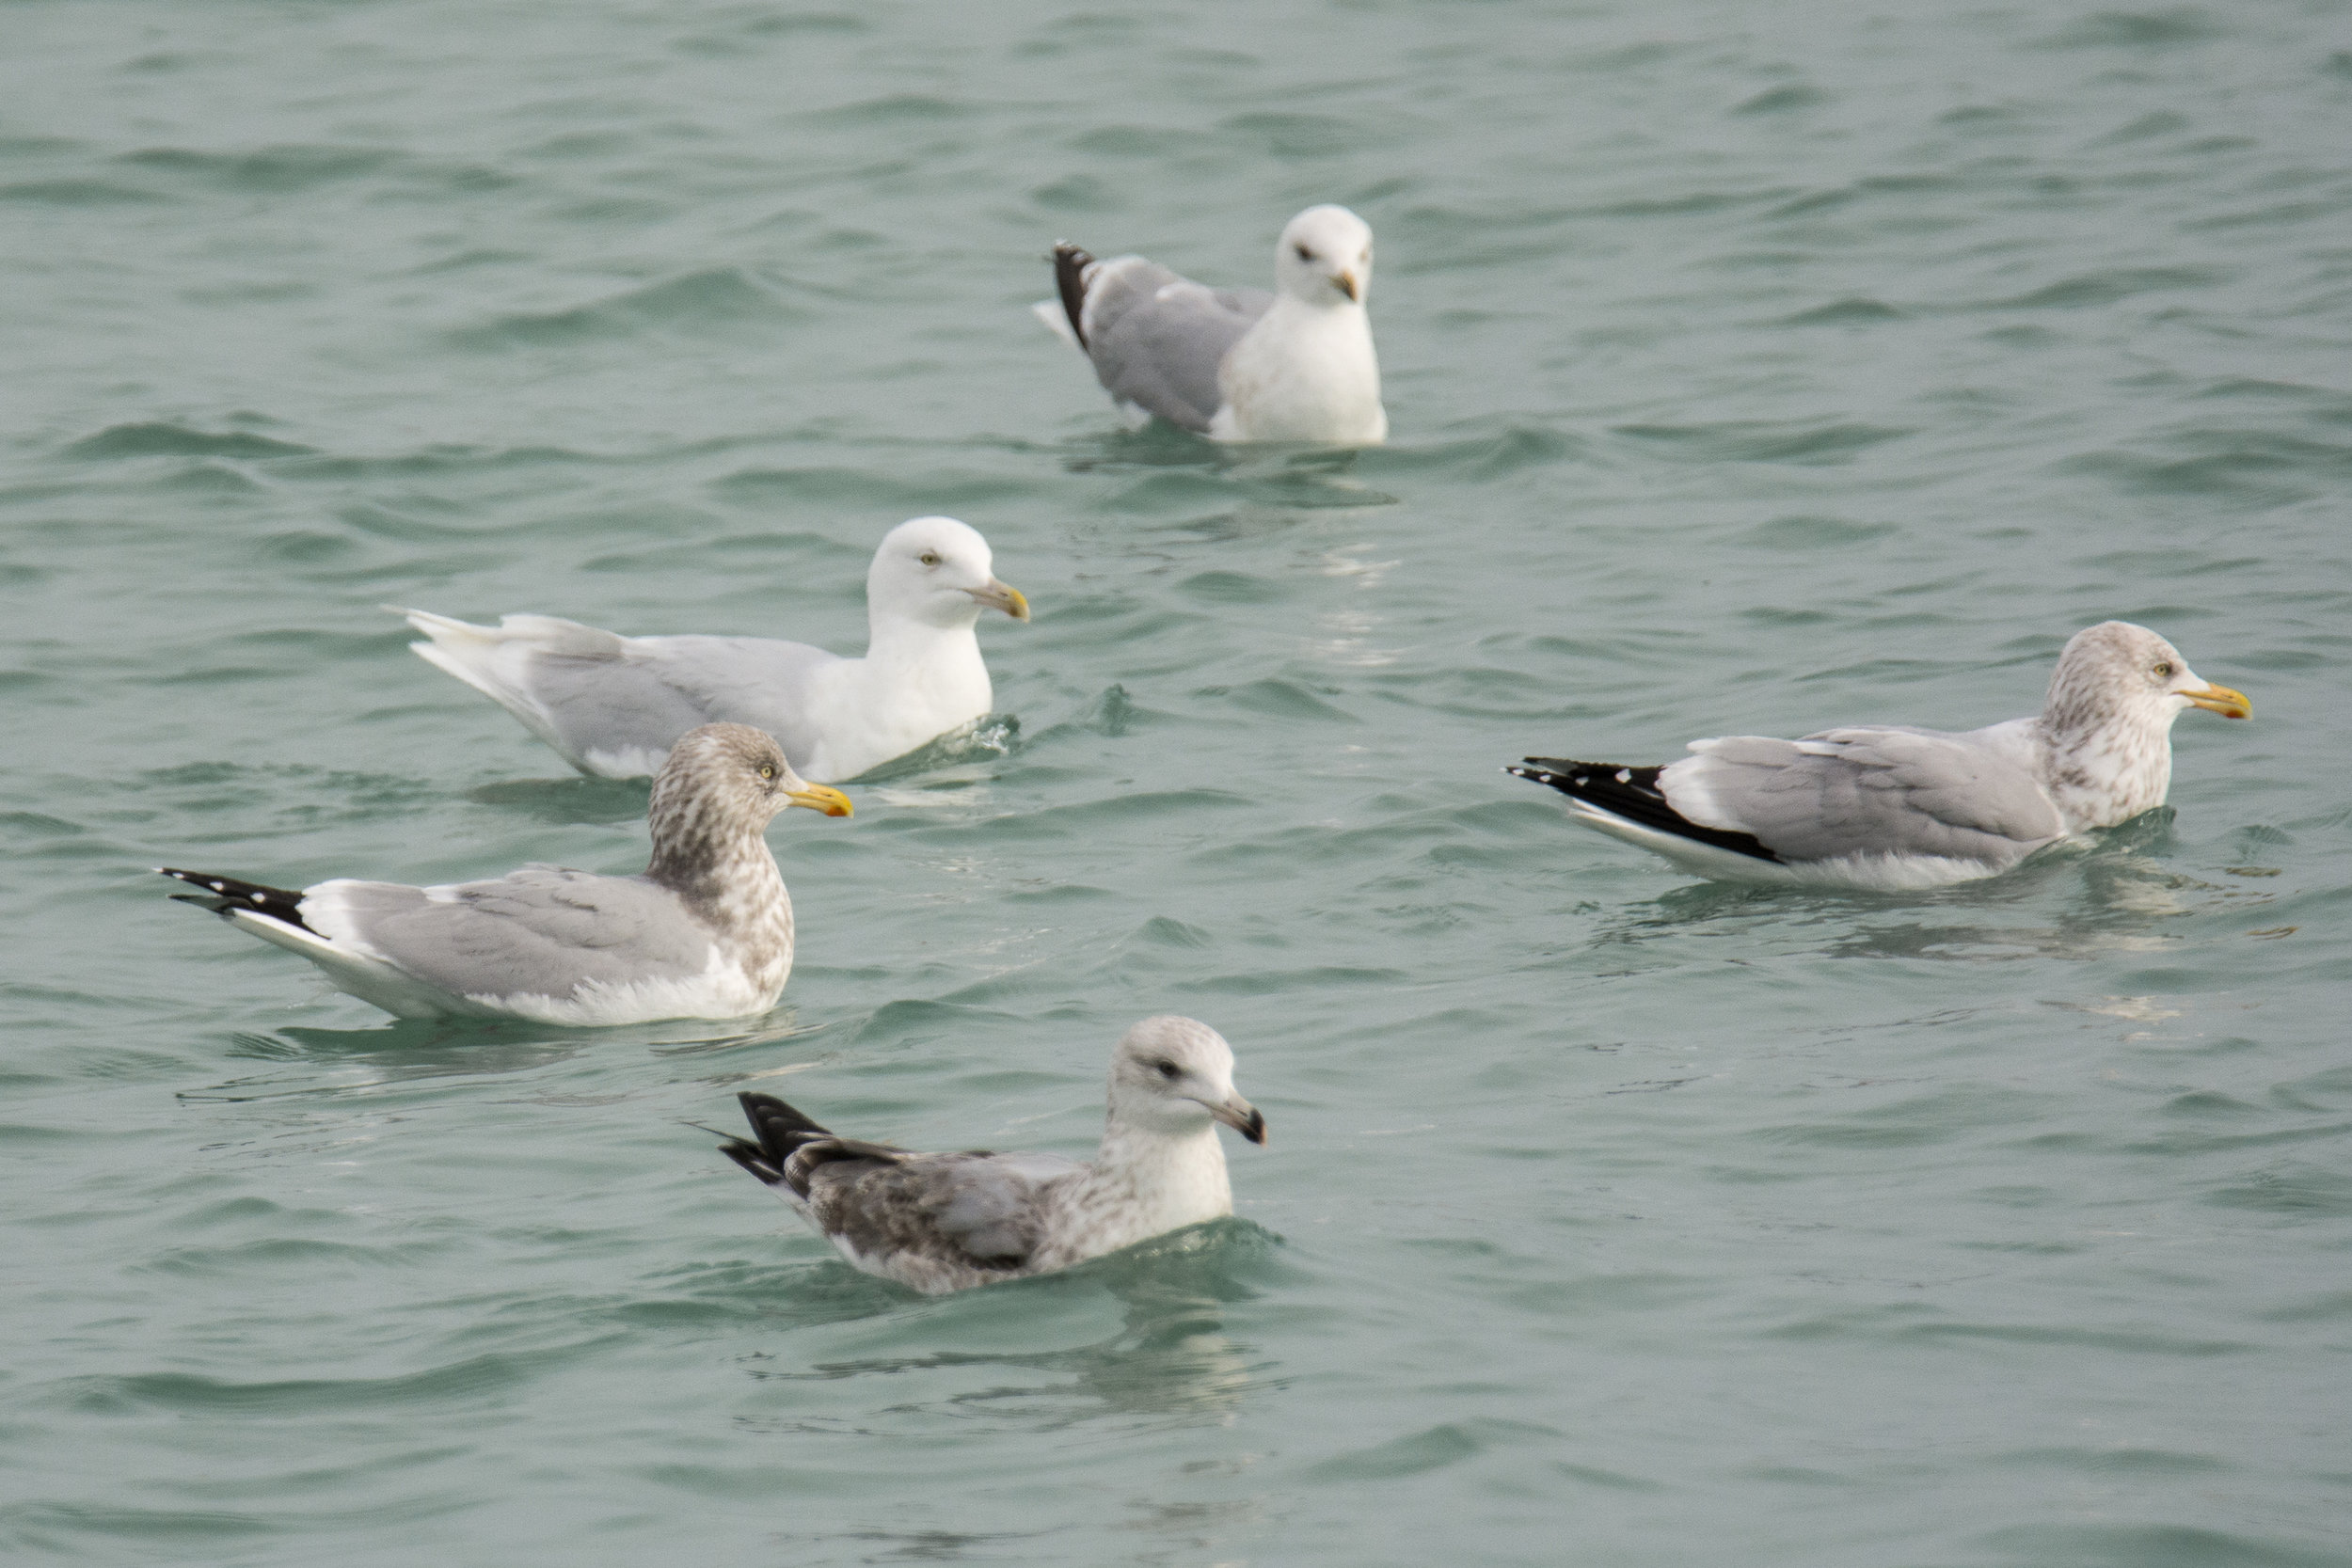 Adult Glaucous Gull among a group of Herring Gulls